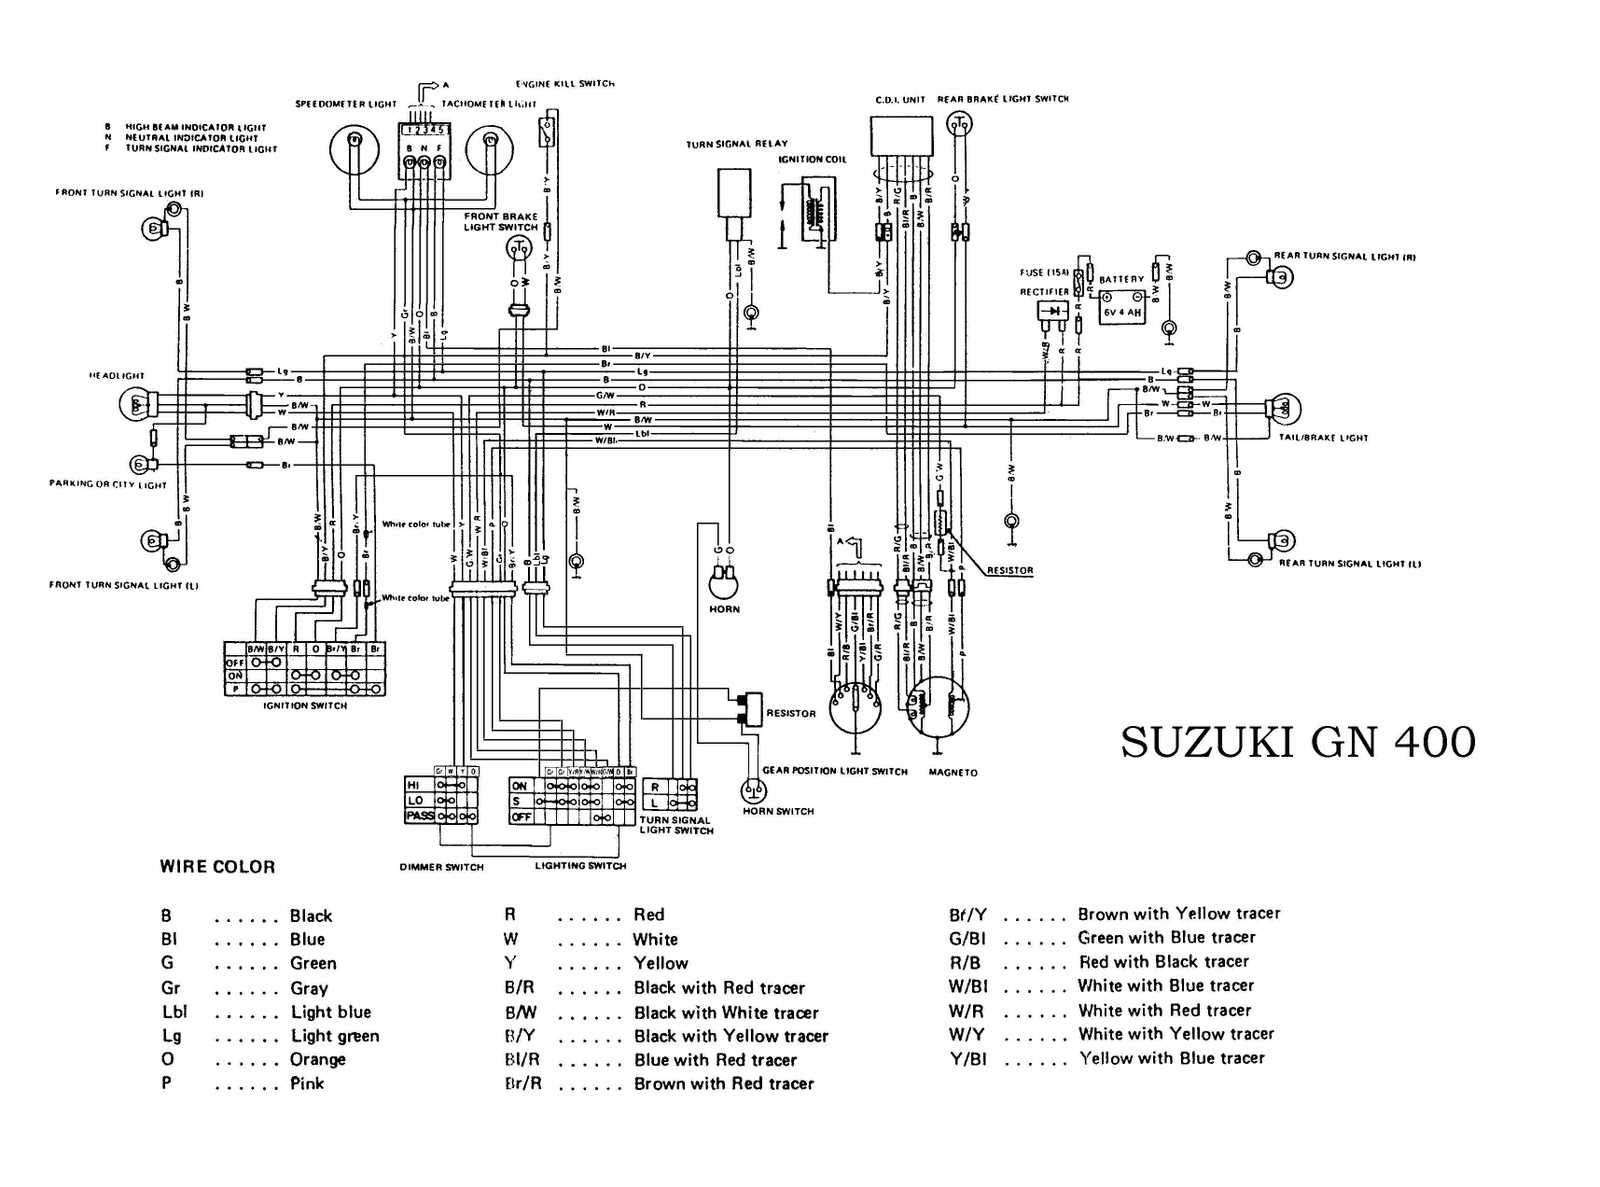 Suzuki+GN400+Electrical+Wiring+Diagram e67 wiring diagram smart car diagrams \u2022 wiring diagrams j squared co suzuki f6a wiring diagram at gsmx.co